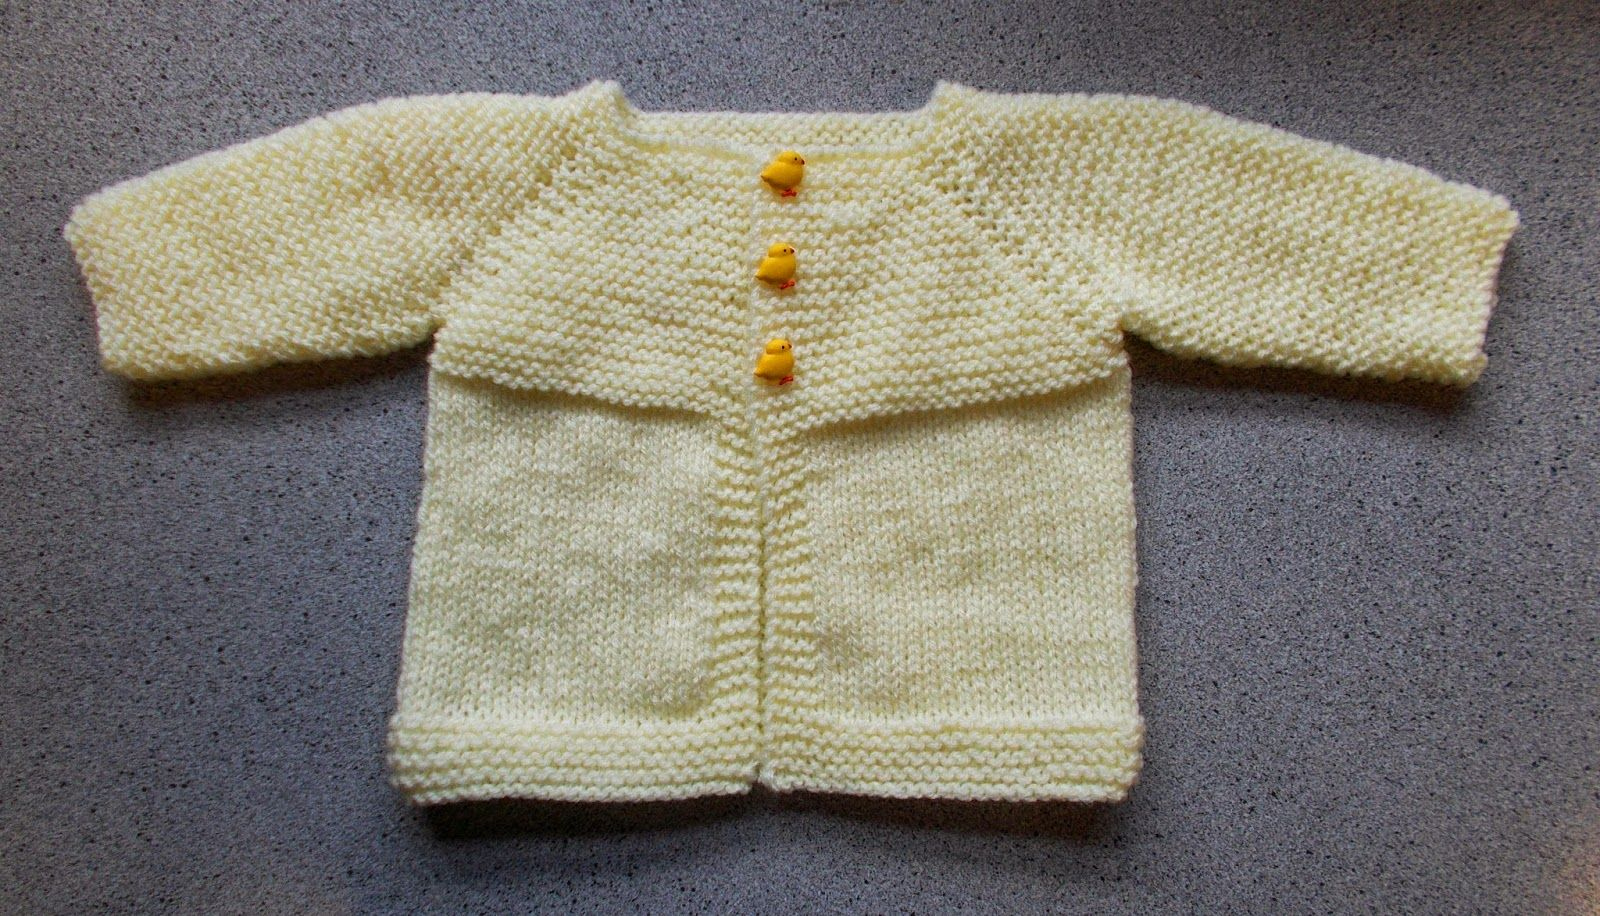 marianna\'s lazy daisy days - free pattern | Knits I love | Pinterest ...